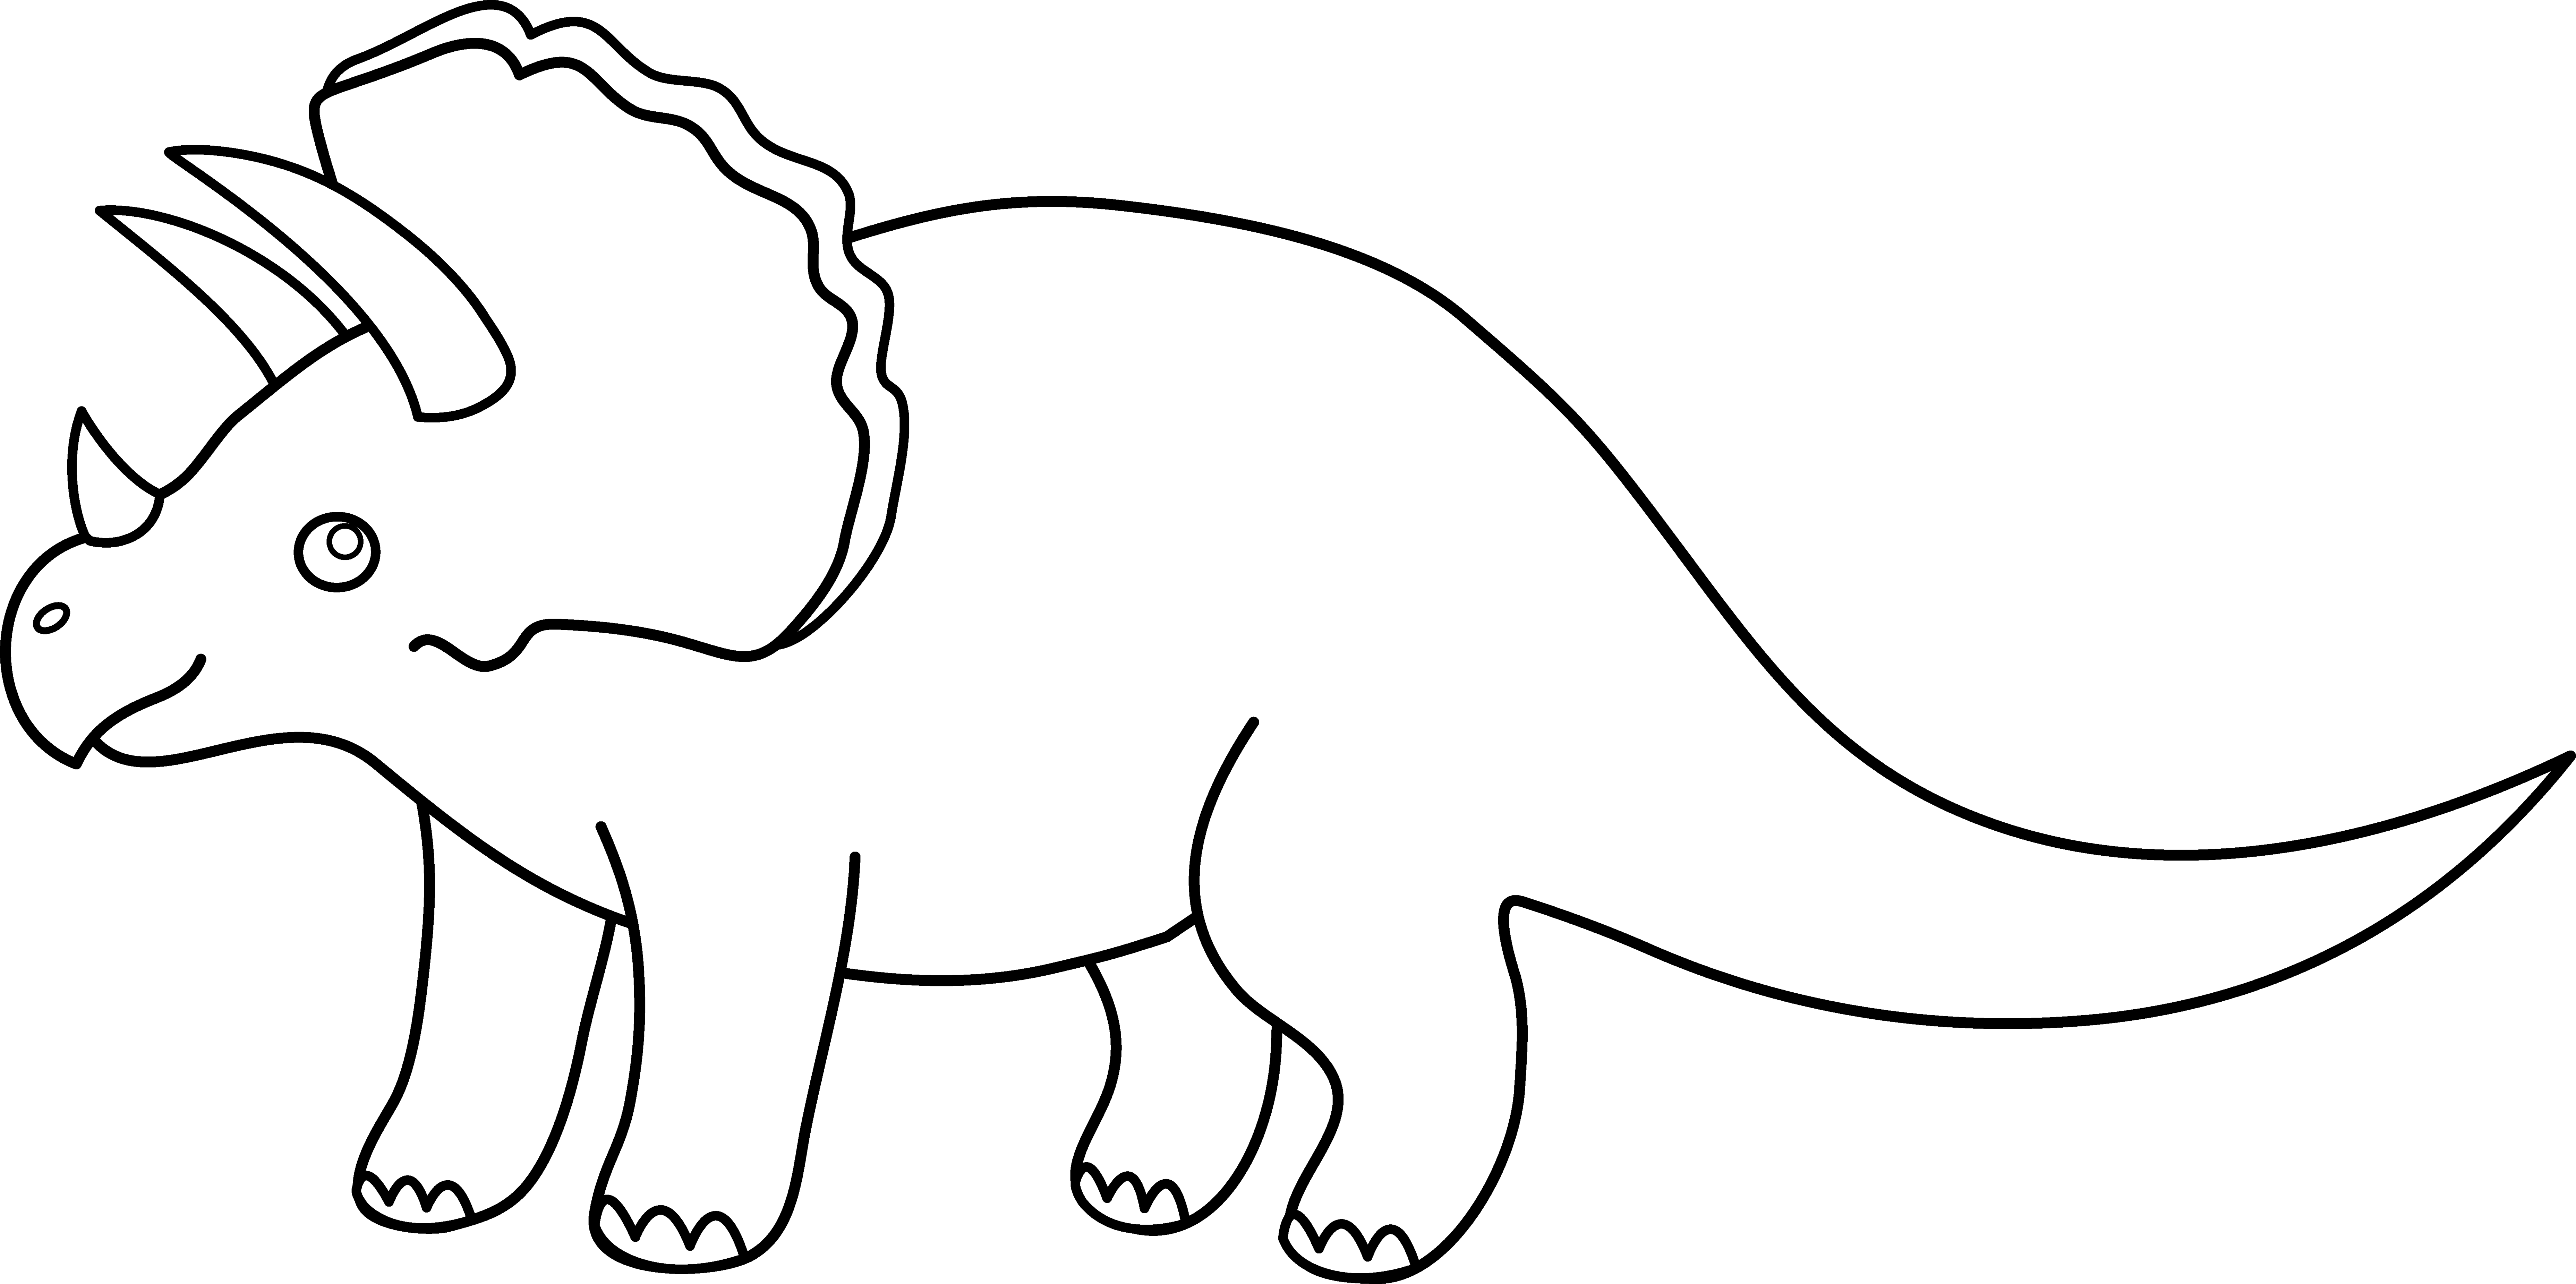 collection of black. Dinosaur clipart easy